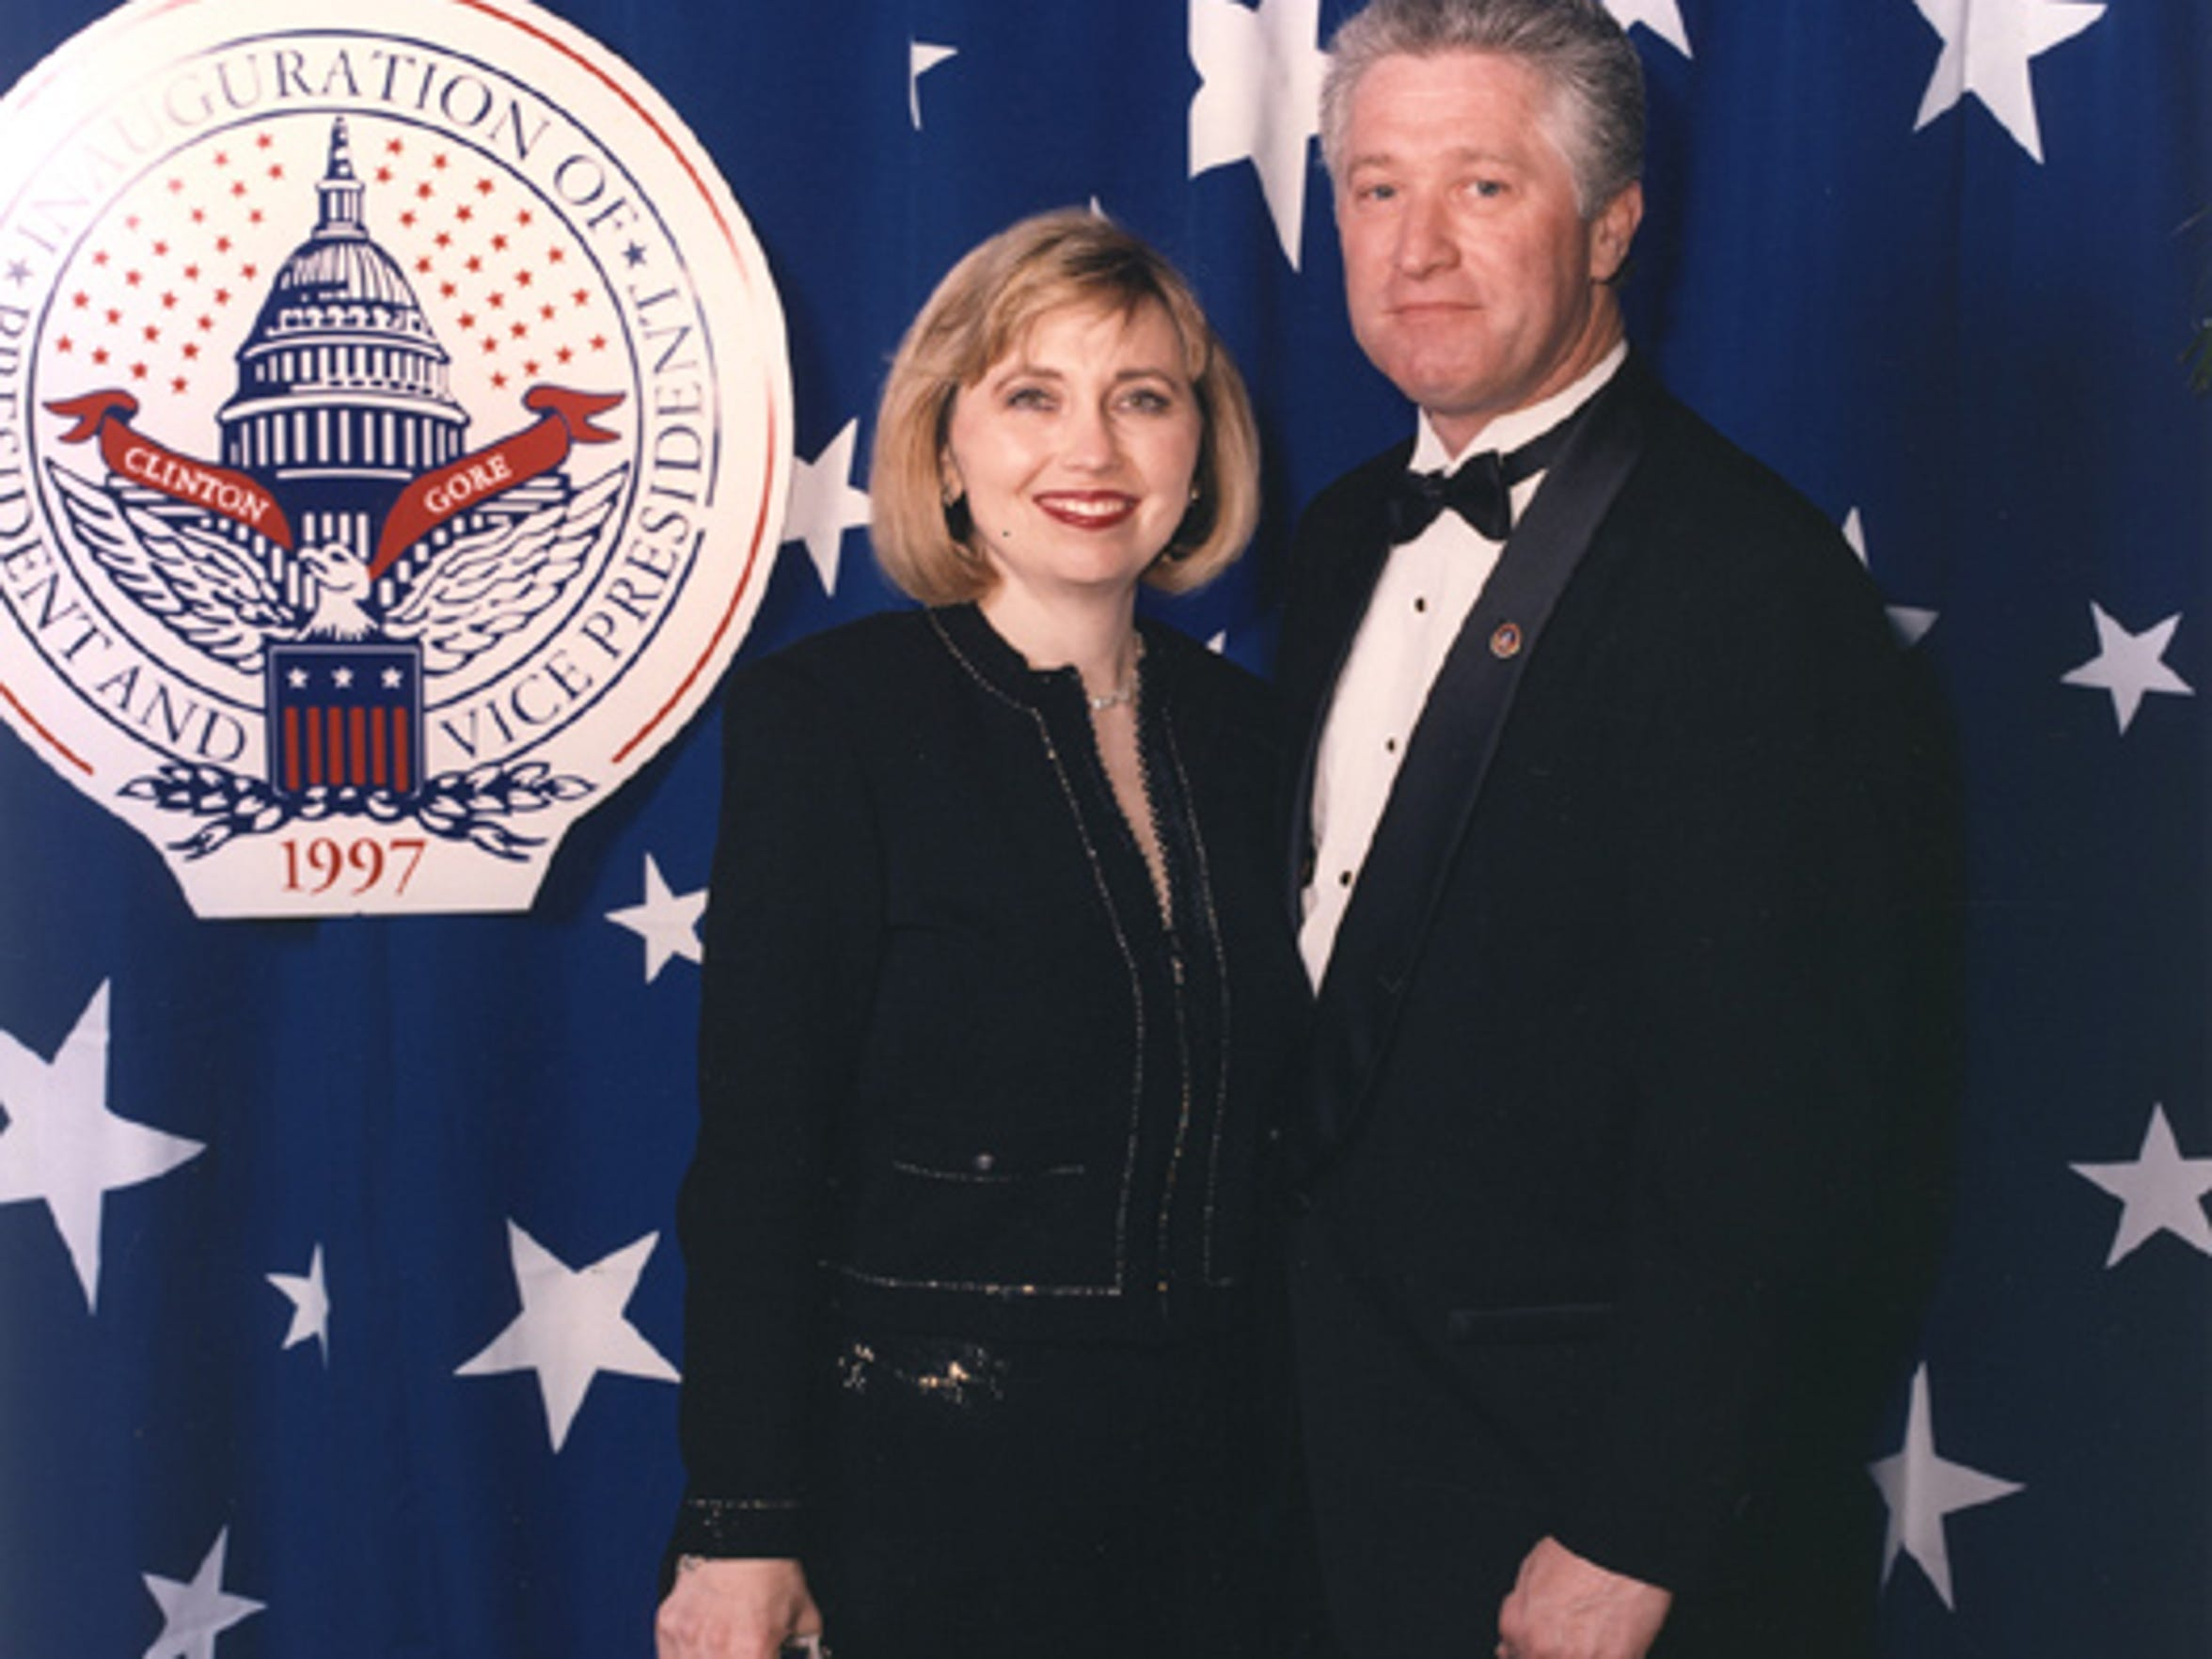 Teresa Barnwell and Pat Rick, who are Hillary and Bill Clinton impersonators, are pictured here at the California Ball in Washington, D.C. after Bill Clinton's 1997 inauguration.